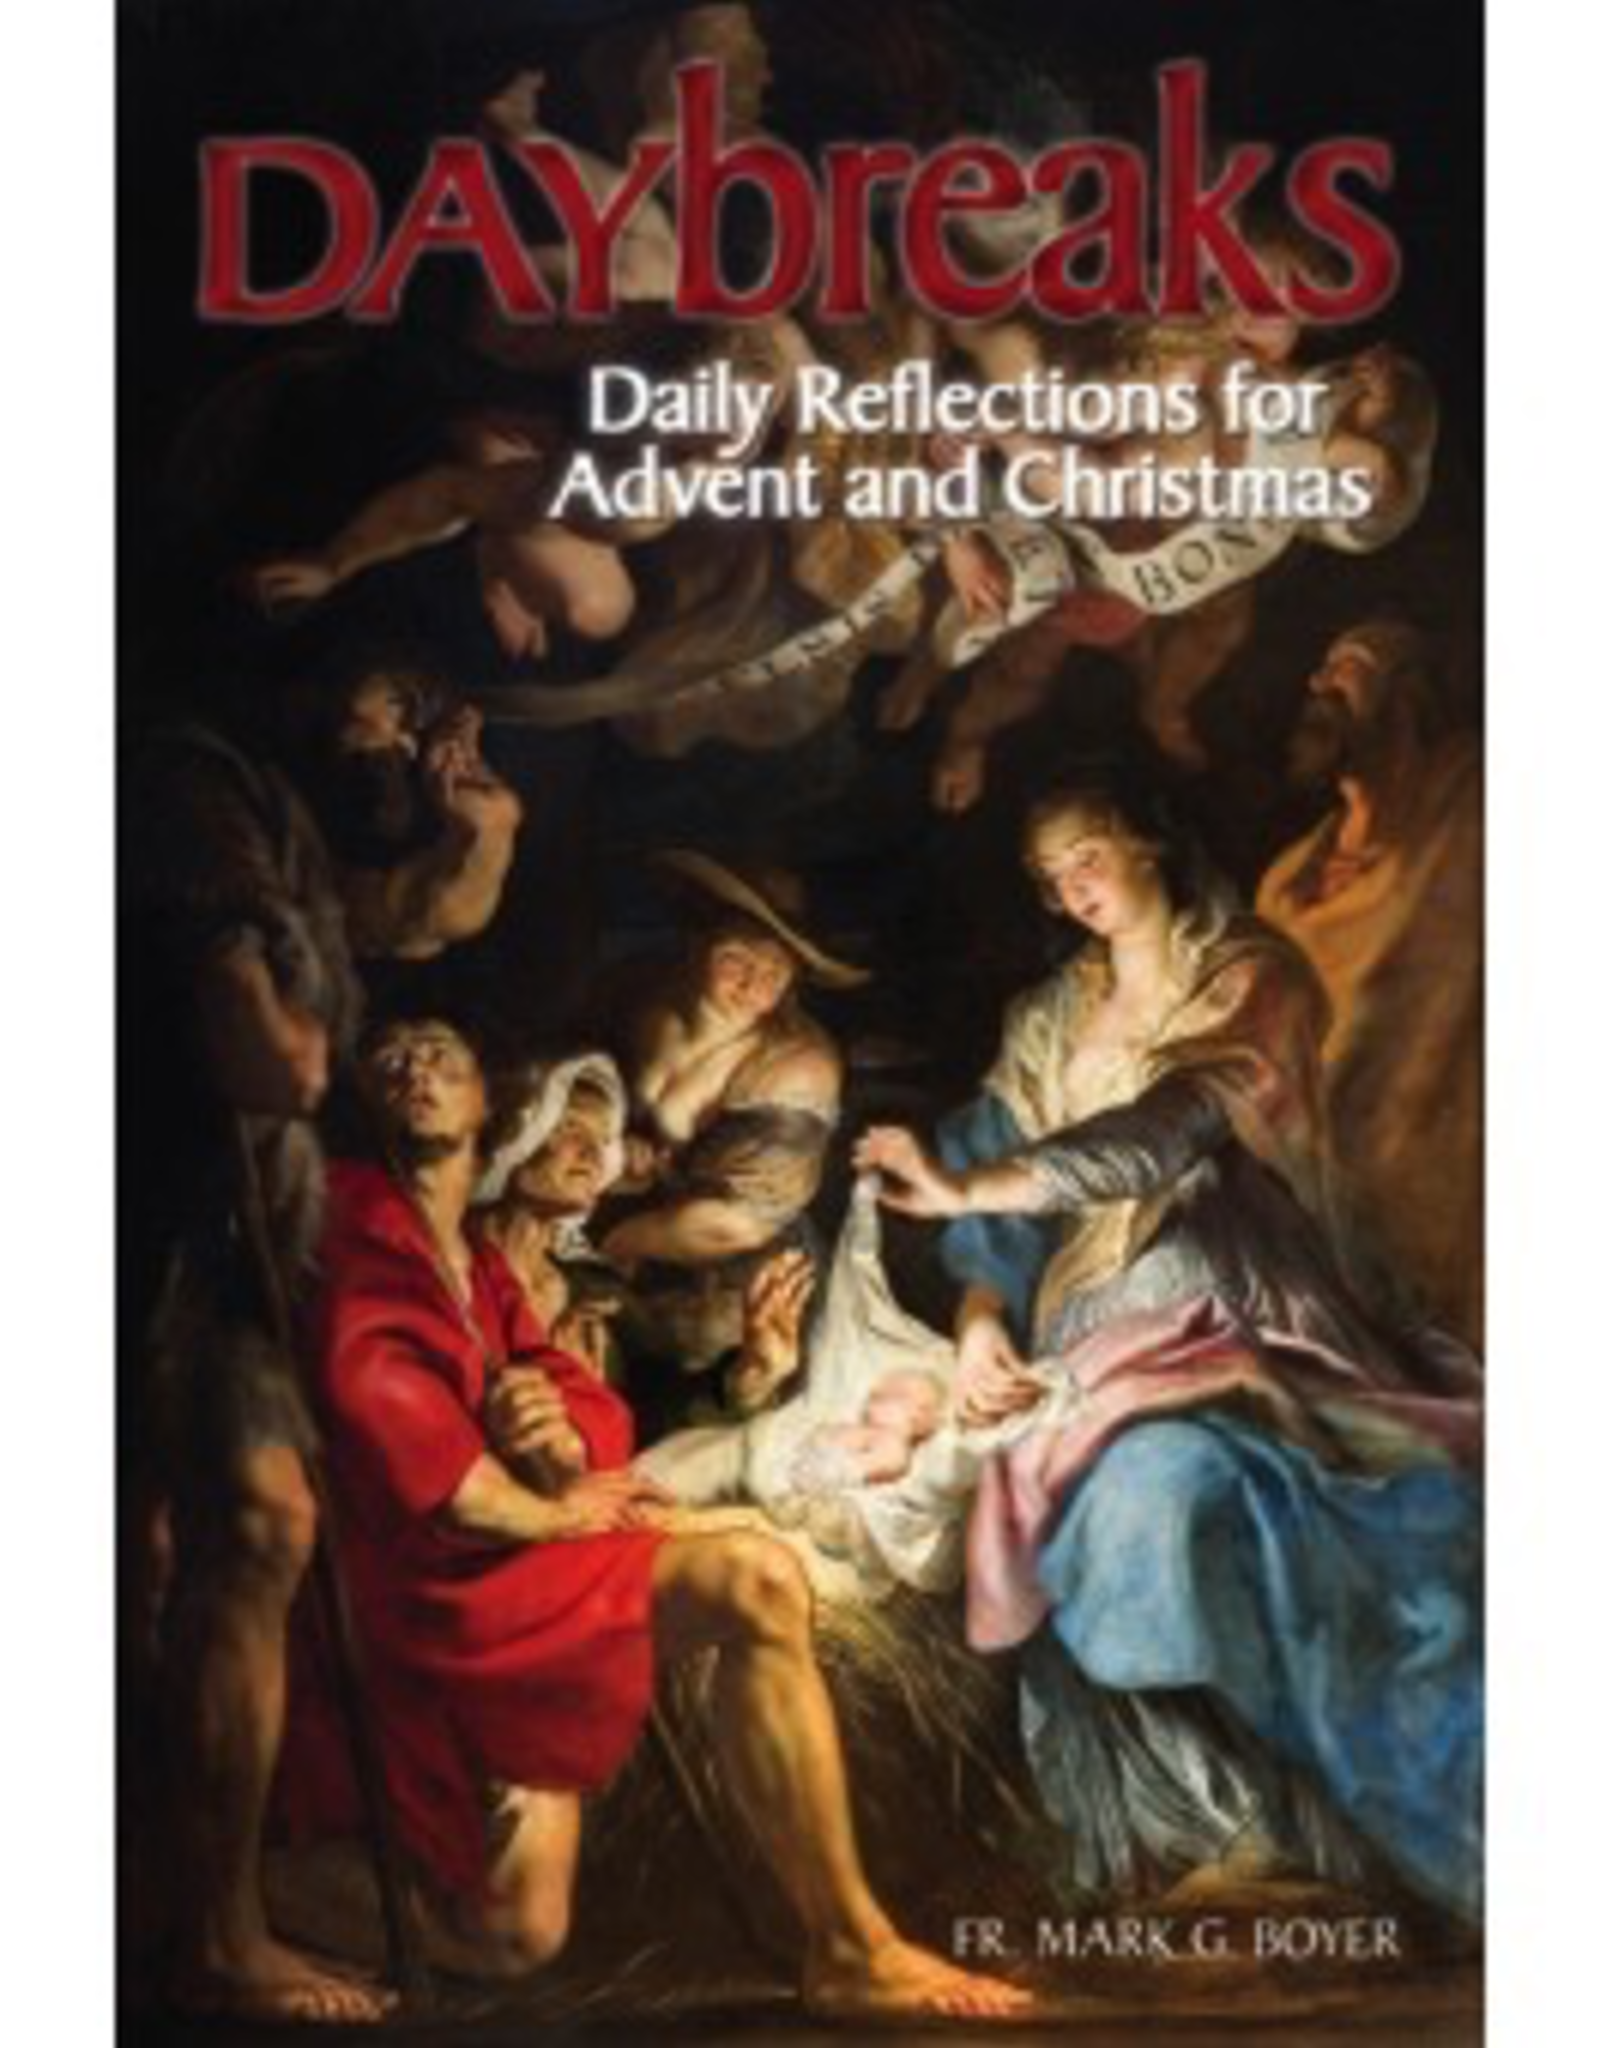 Liguori Daybreaks:  Daily Reflections for Advent and Christmas, by Mark Boyer